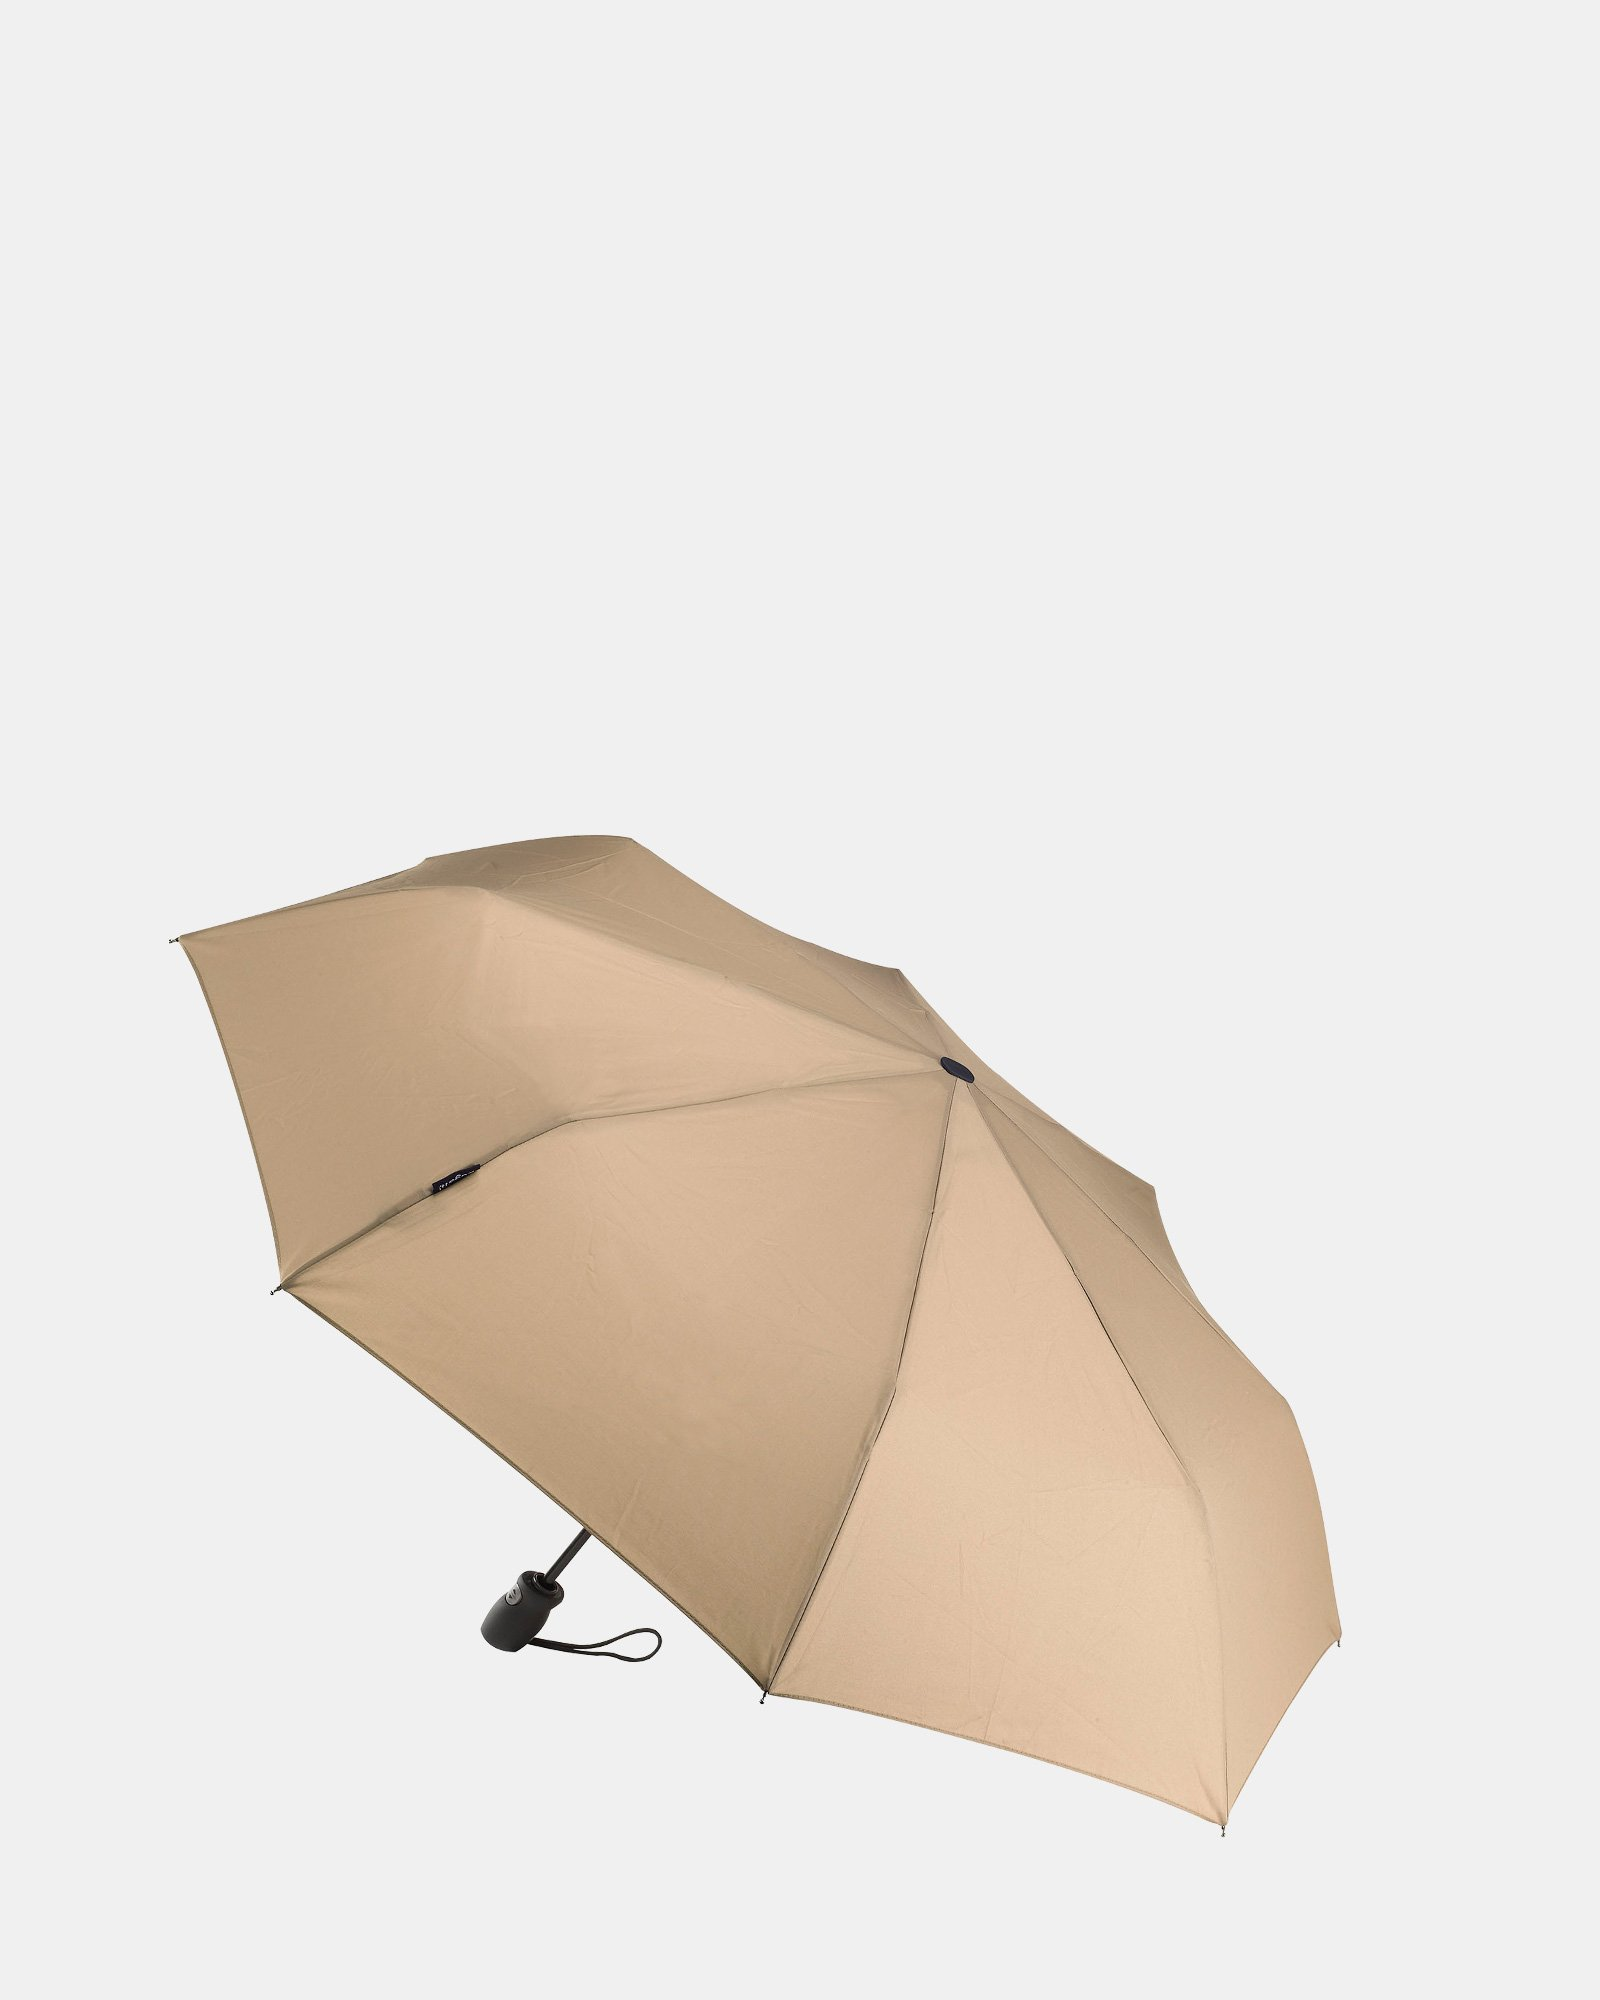 TURISMO - Umbrella with Automatic one-touch open & close mechanism - Camel - Bugatti - Zoom